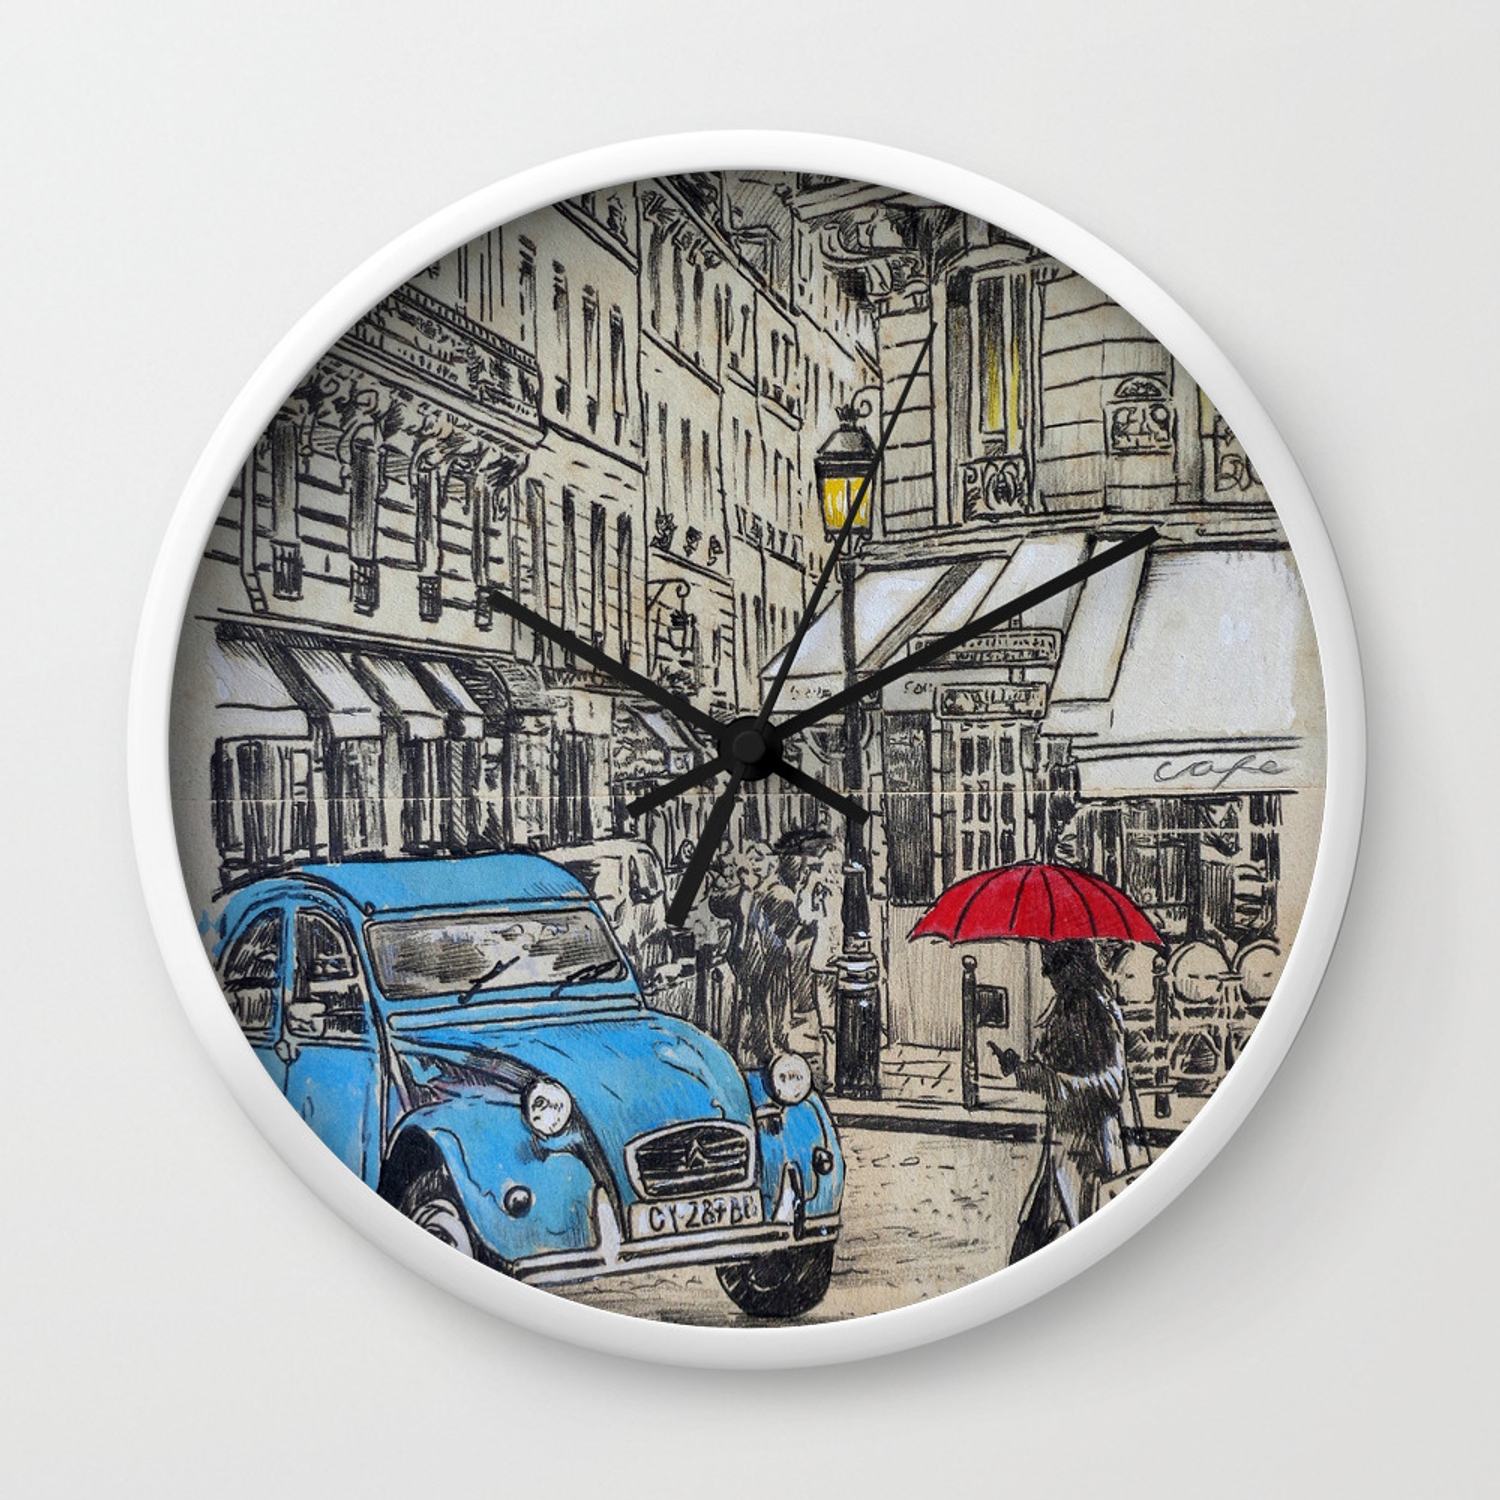 Blue Citroen Wall Clock with Alvis Traditional Metal Wall Decor (Image 8 of 30)